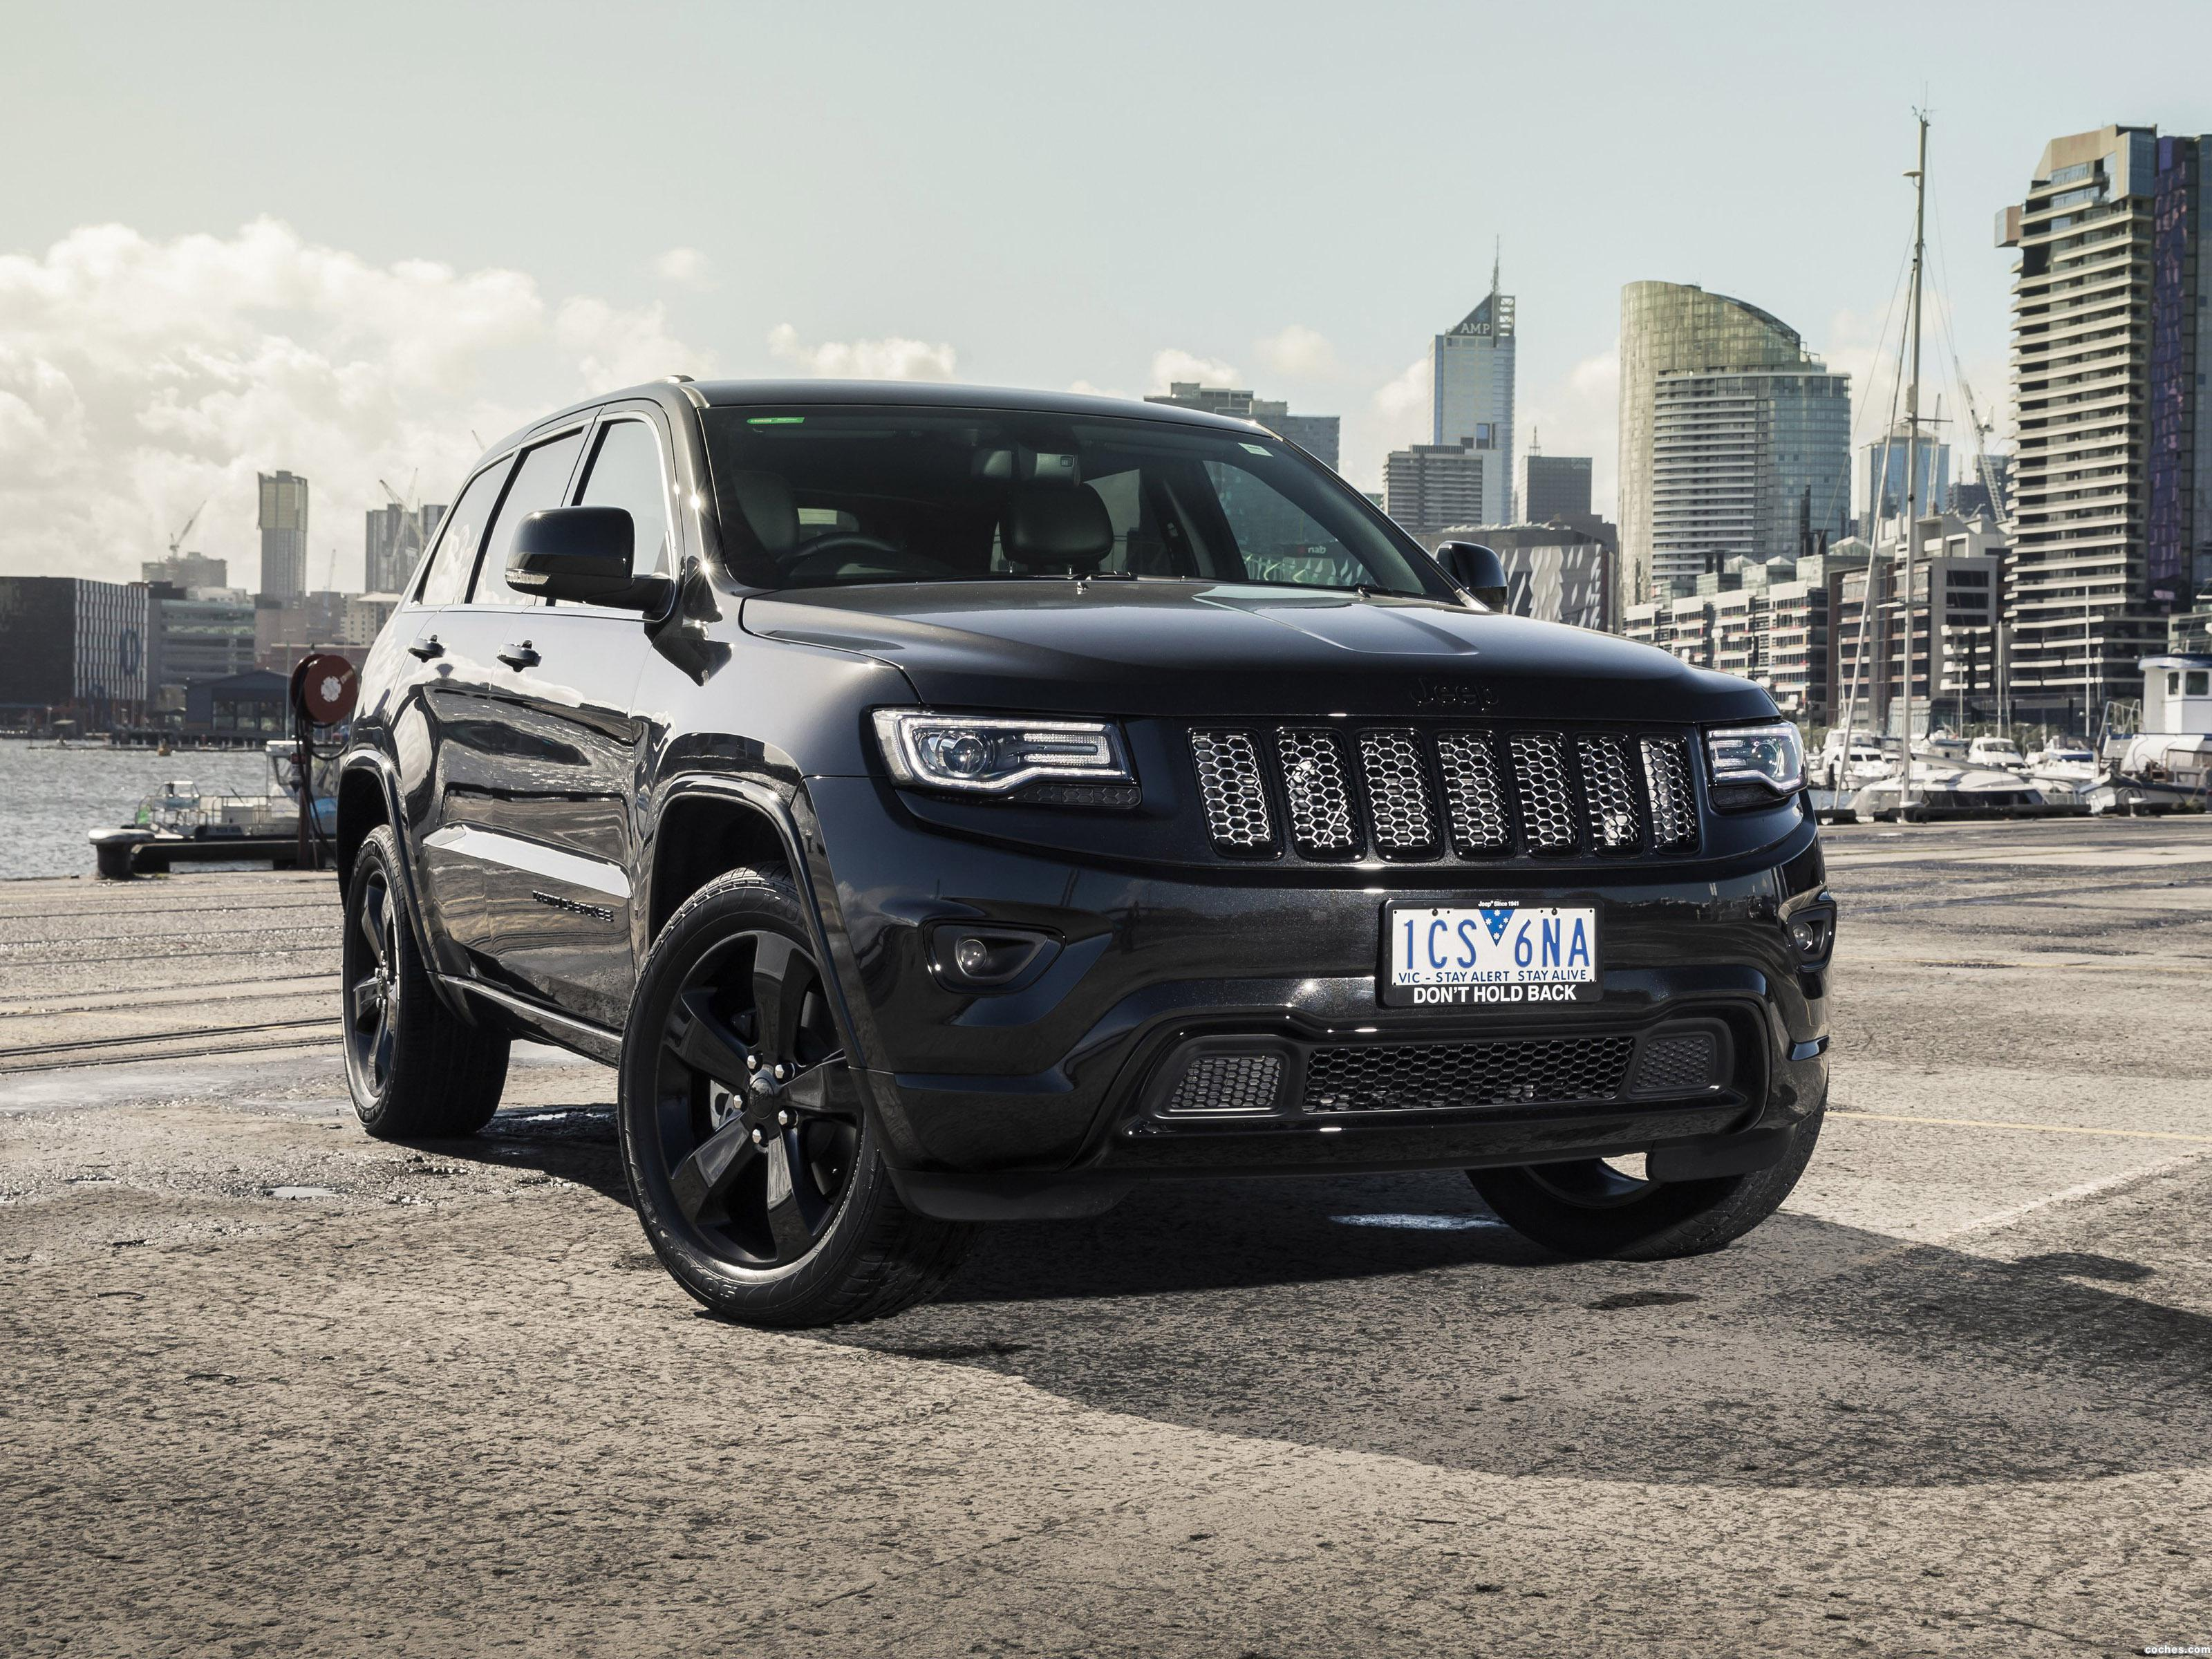 wallpaperjeep widescreen jeep smartphone wallpaper for hd srt cherokee grand pics